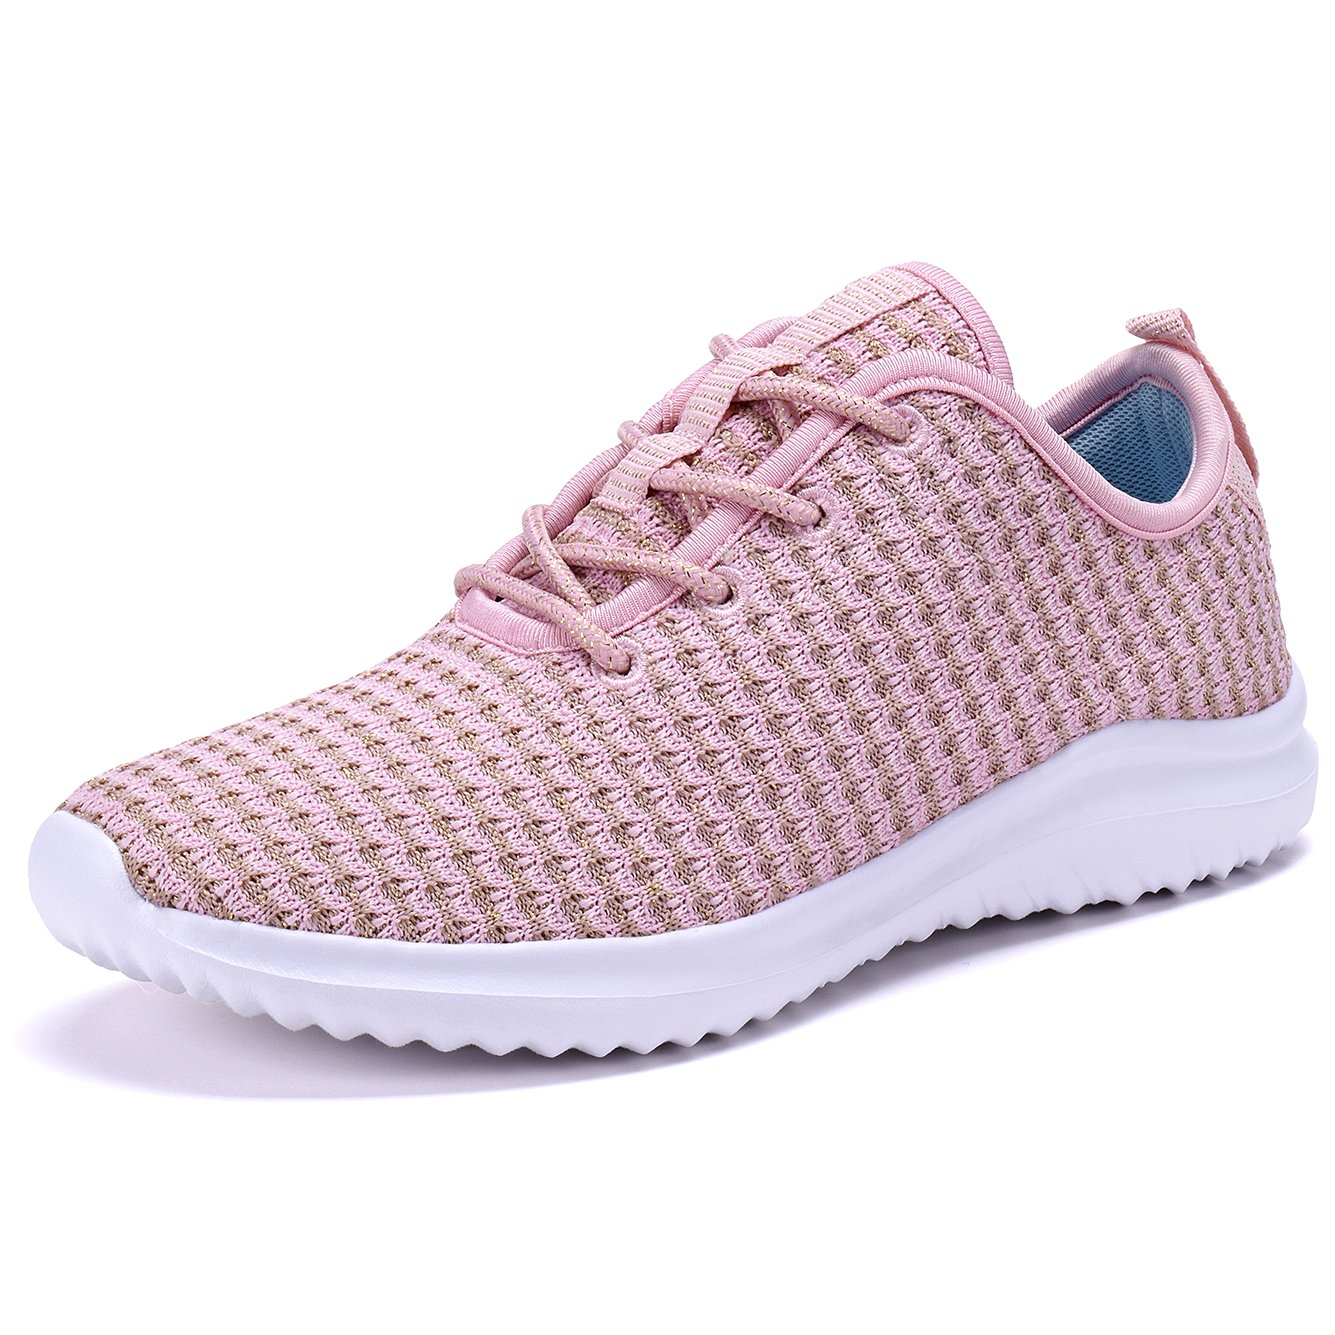 YILAN Women's Fashion Sneakers Sport Shoes (8 B(M) US, Pink-4)